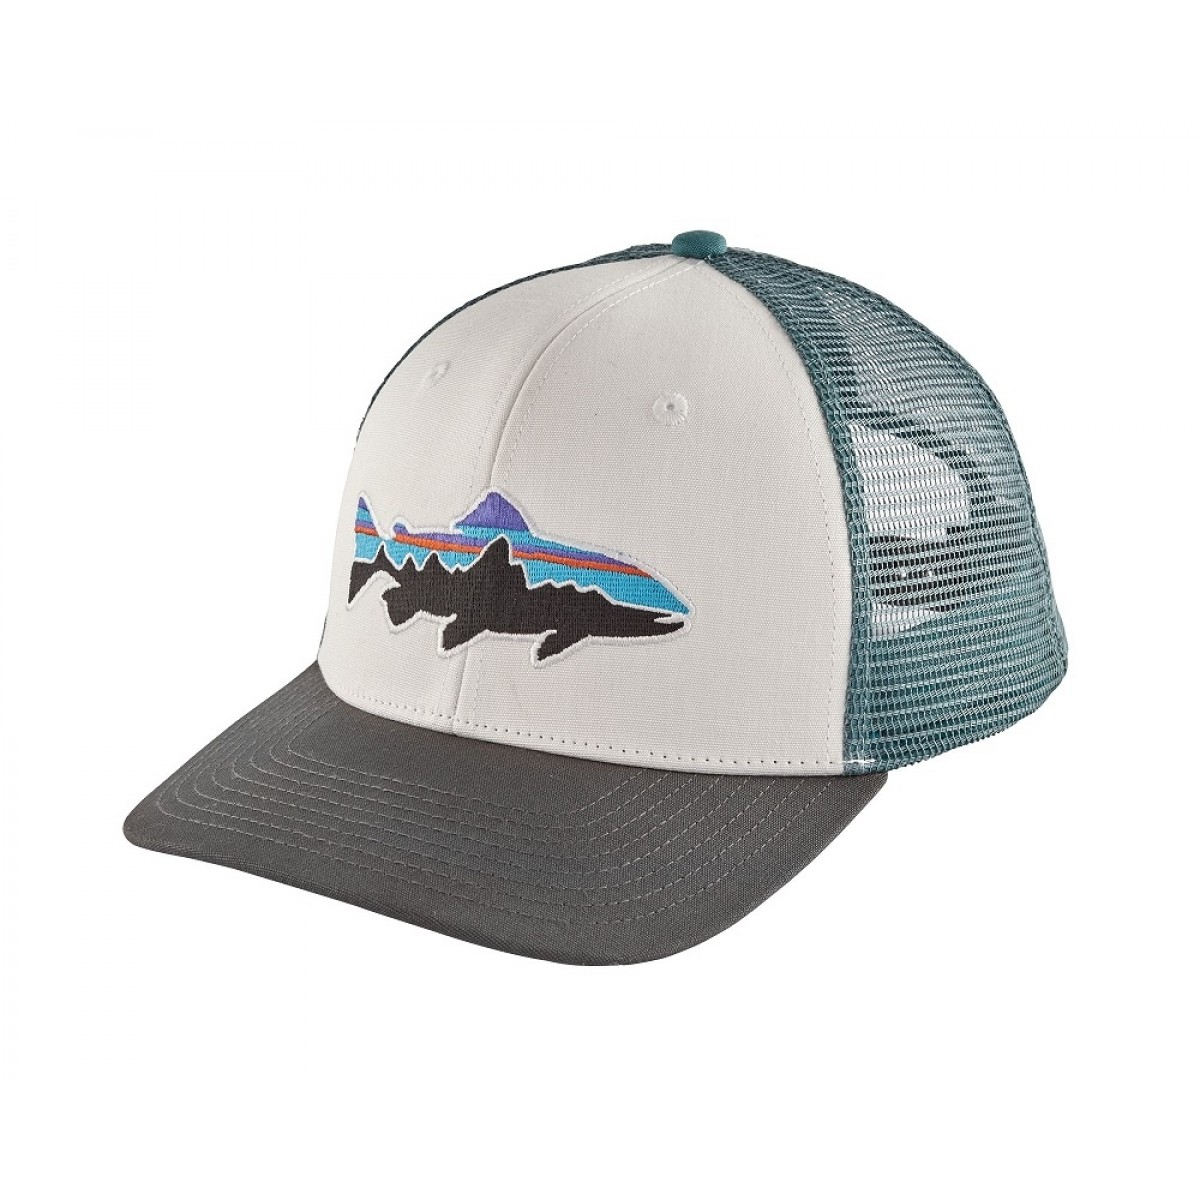 0a921aaf438 Patagonia Fitz Roy Trout Trucker Hat